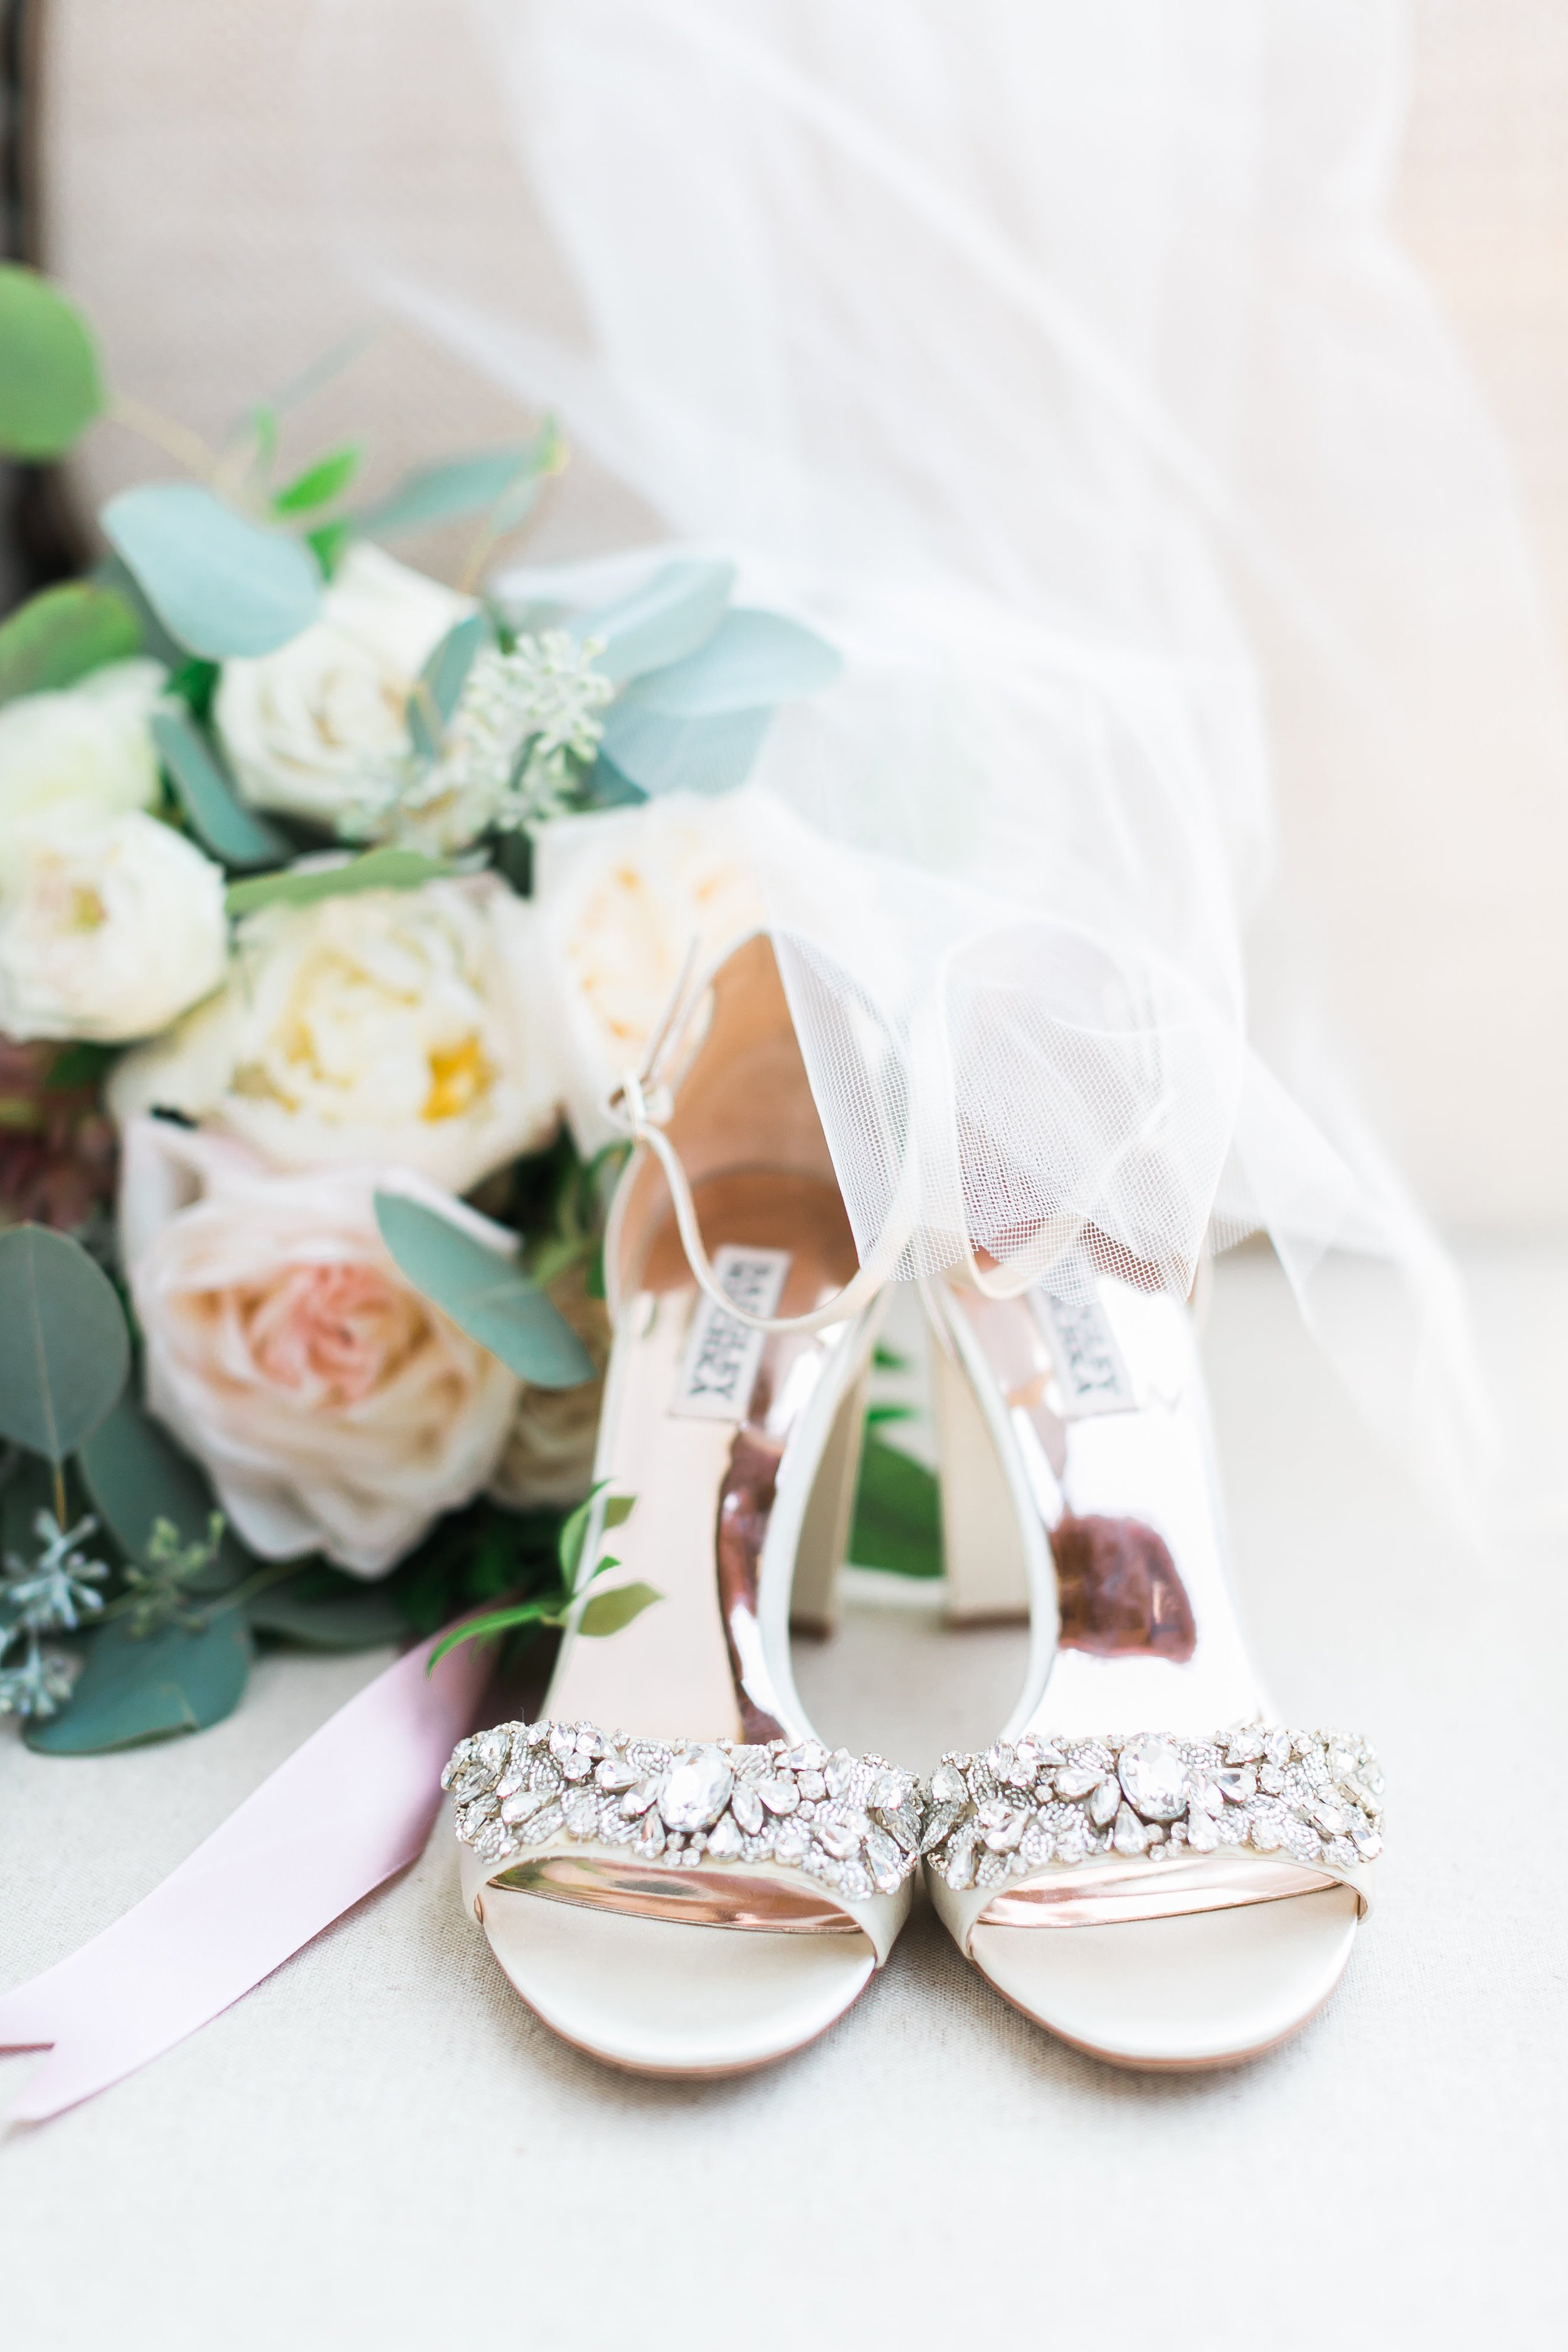 Champagne Badgley Mischka Wedding Shoes.   CREDITS:  Destination Wedding Planner  ANDREA EPPOLITO EVENTS  · Images by  J.ANNE P  HOTOGRAPHY  · Video  HOO FILMS  · Venue Ritz Carlton Bacara Santa Barbara ·Gown  MONIQUE LHULLIER ·Bridesmaids Dresses  SHOW ME YOUR MUMU ·Stationery  SHE PAPERIE ·Bride's Shoes  BADGLEY MISCHKA ·Hair and Makeup  TEAM HAIR AND MAKEUP · Floral  BLUE MAGNOLIA ·Linen  LA TAVOLA ·Decor Rentals  TENT MERCHANT ·Calligraphy  EBB ·Lighting  FIVE STAR AV ·Ice Cream Station  MCCONNELL'S ICE CREAM